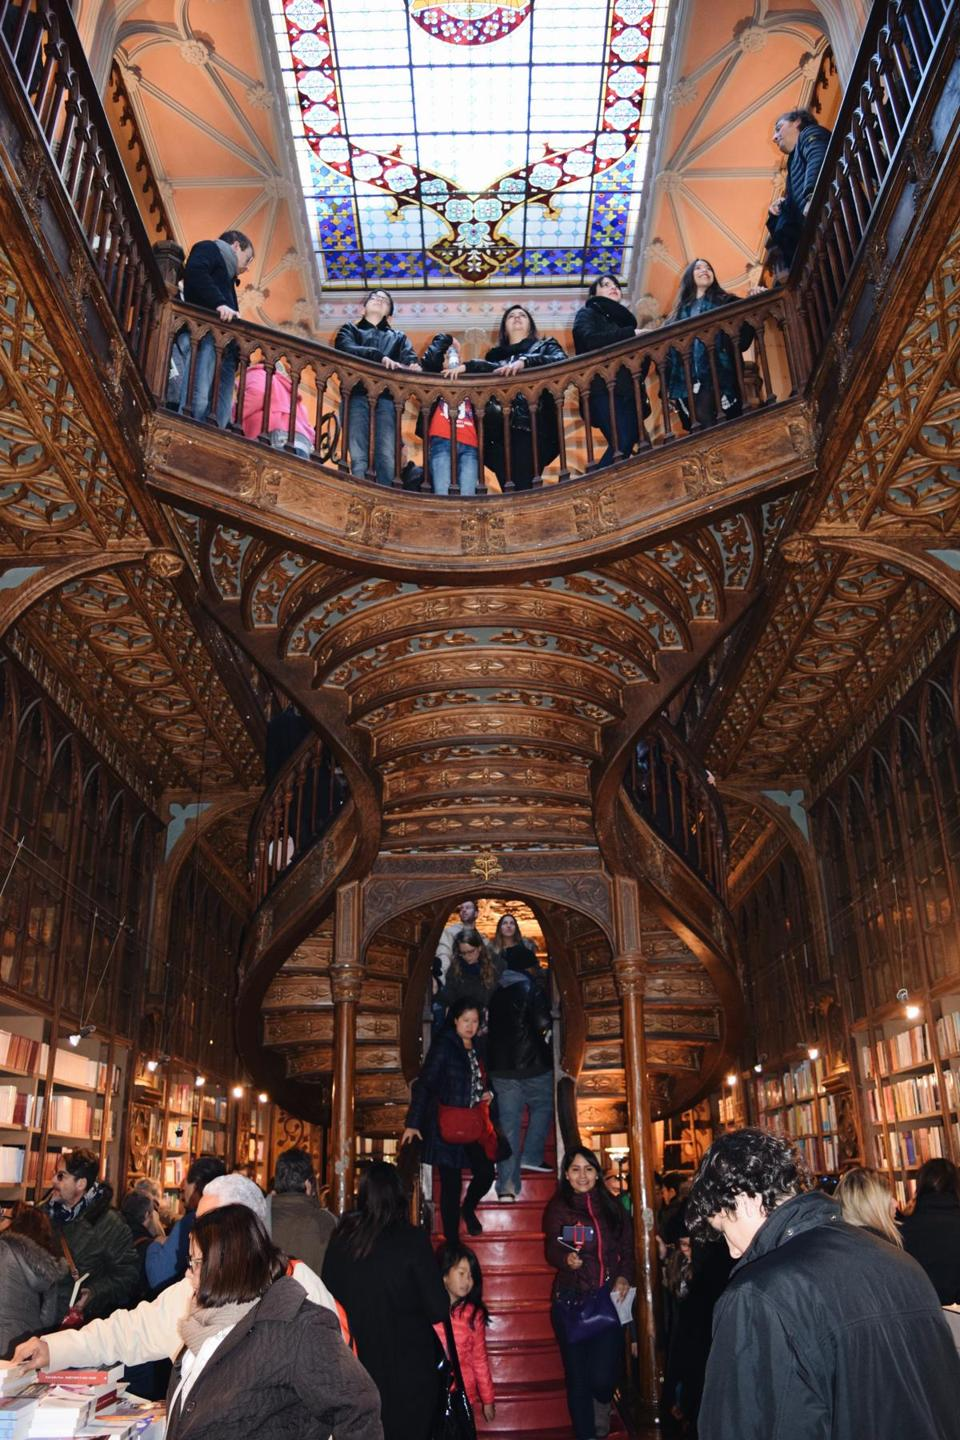 Harry Potter fans have turned century-old Livraria Lello bookstore in Porto into a bustling tourist attraction.